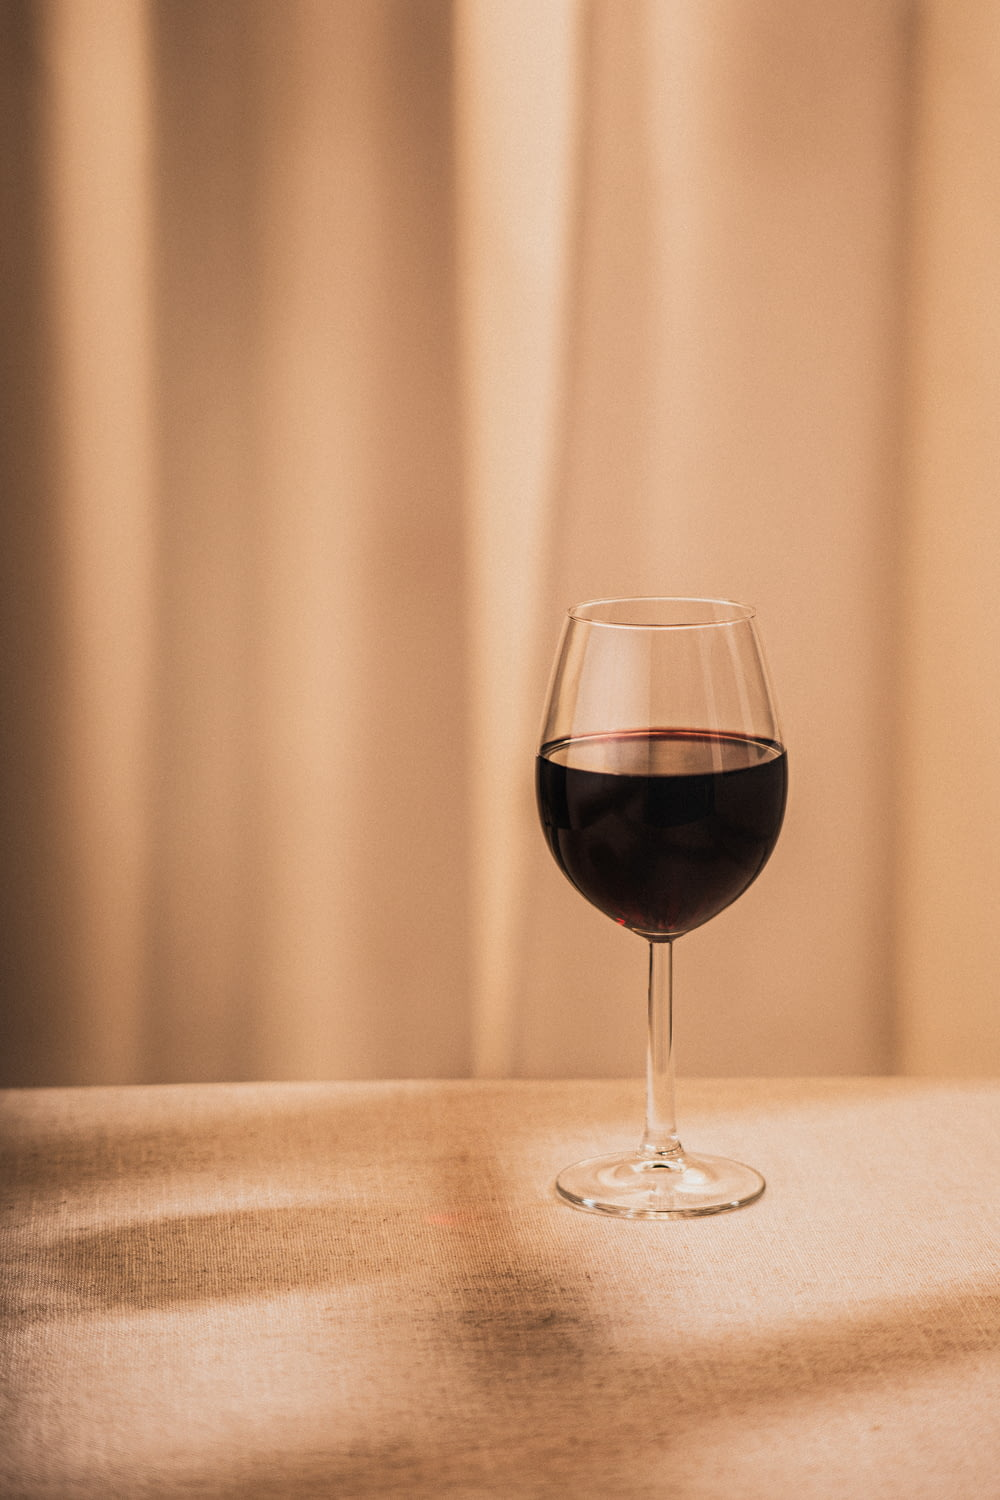 clear wine glass with red wine